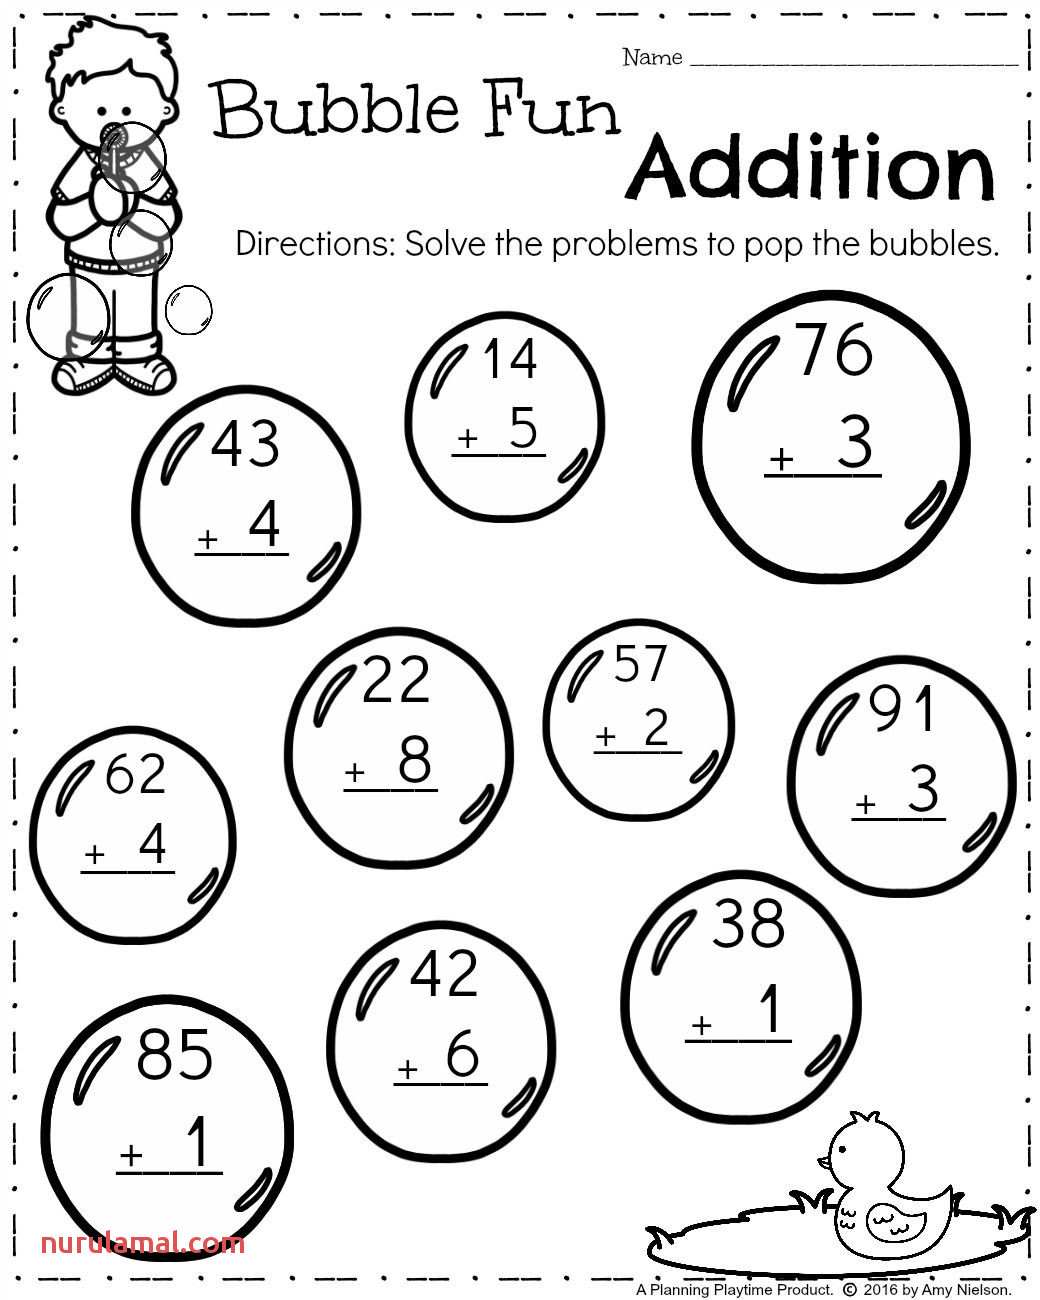 dot to worksheets pdf first conditional reading prehension exercises extreme color by number printable english alphabet handwriting worksheet second grade math problems free preschool